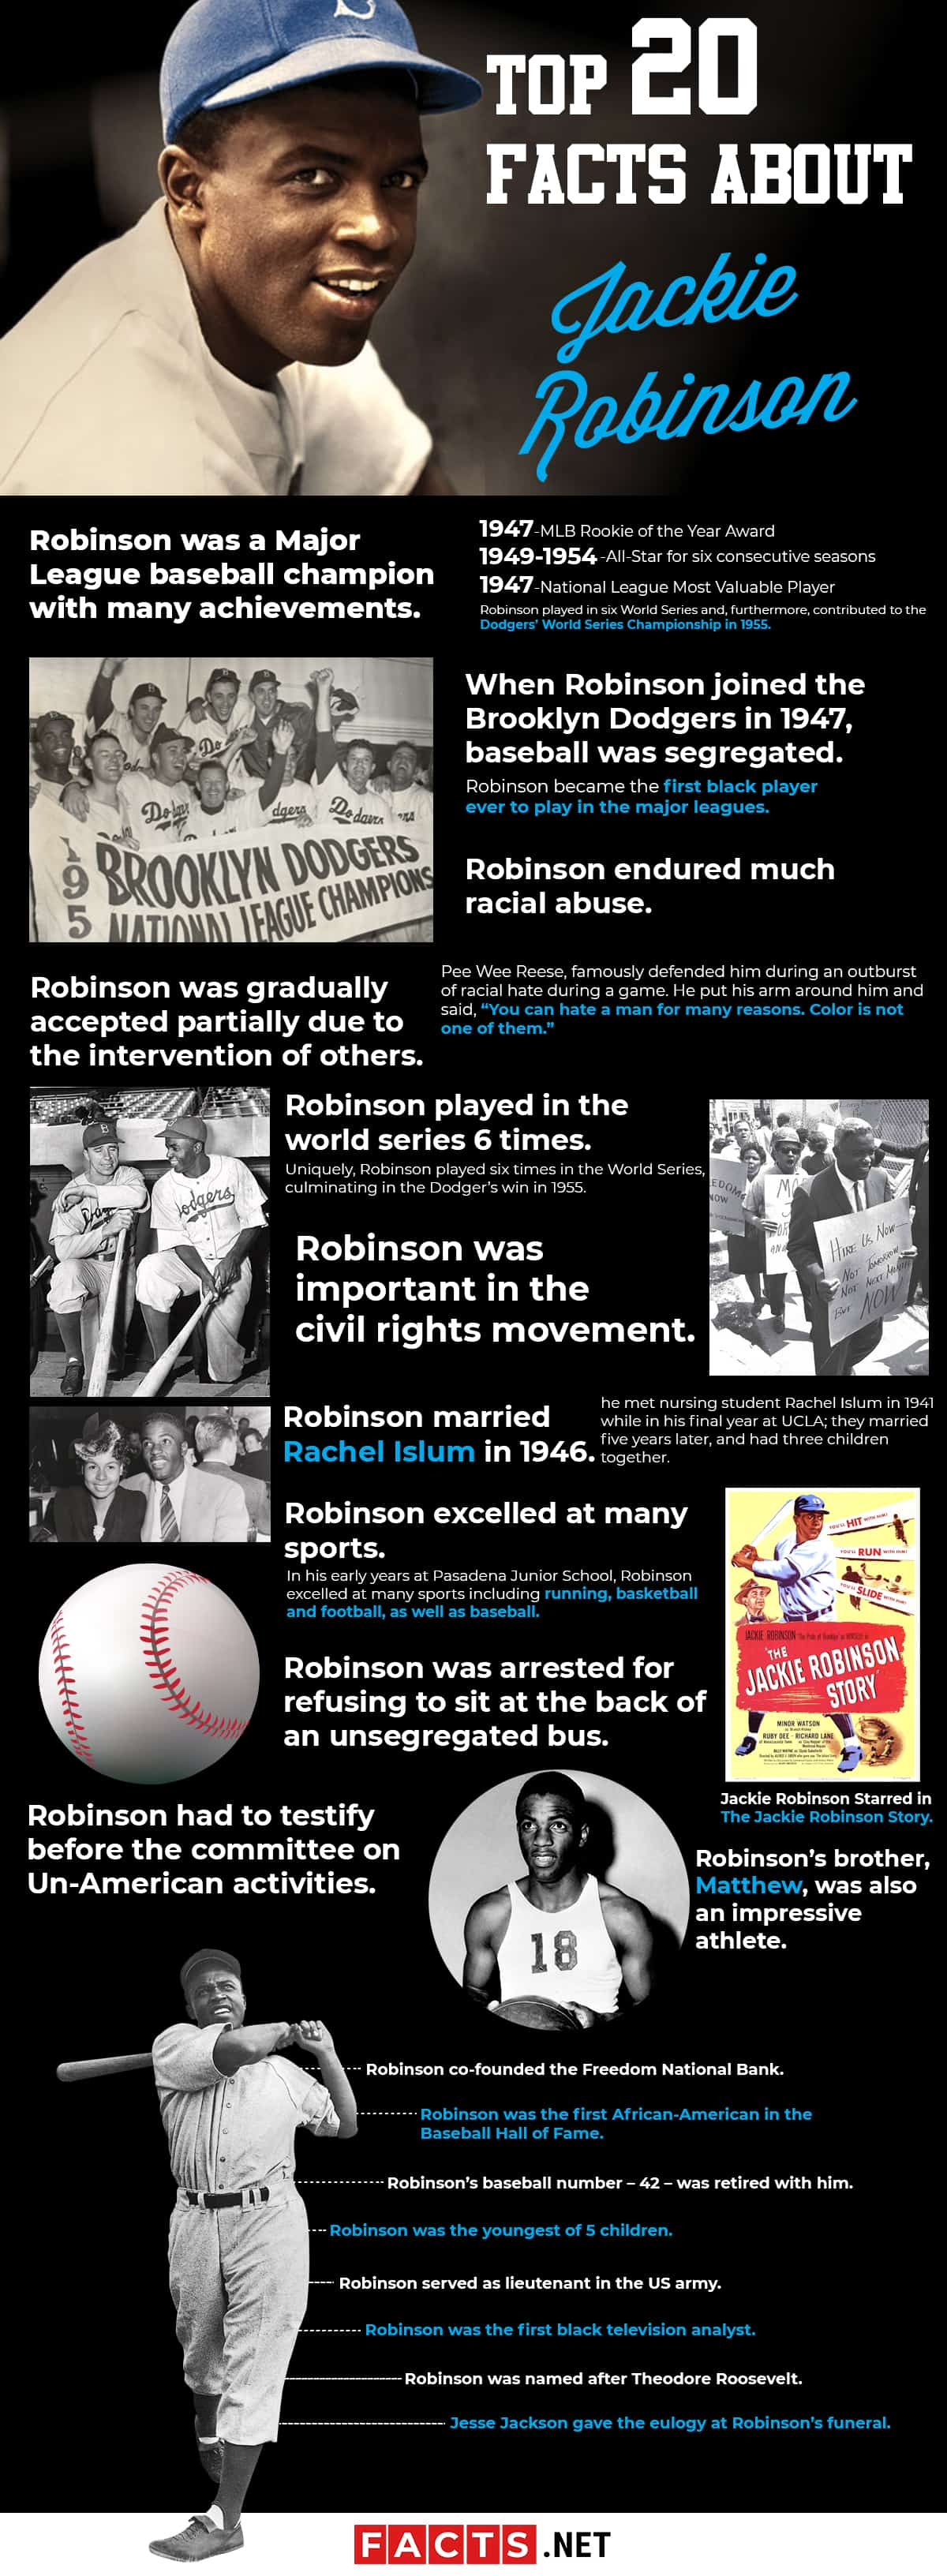 Top 20 Jackie Robinson Facts